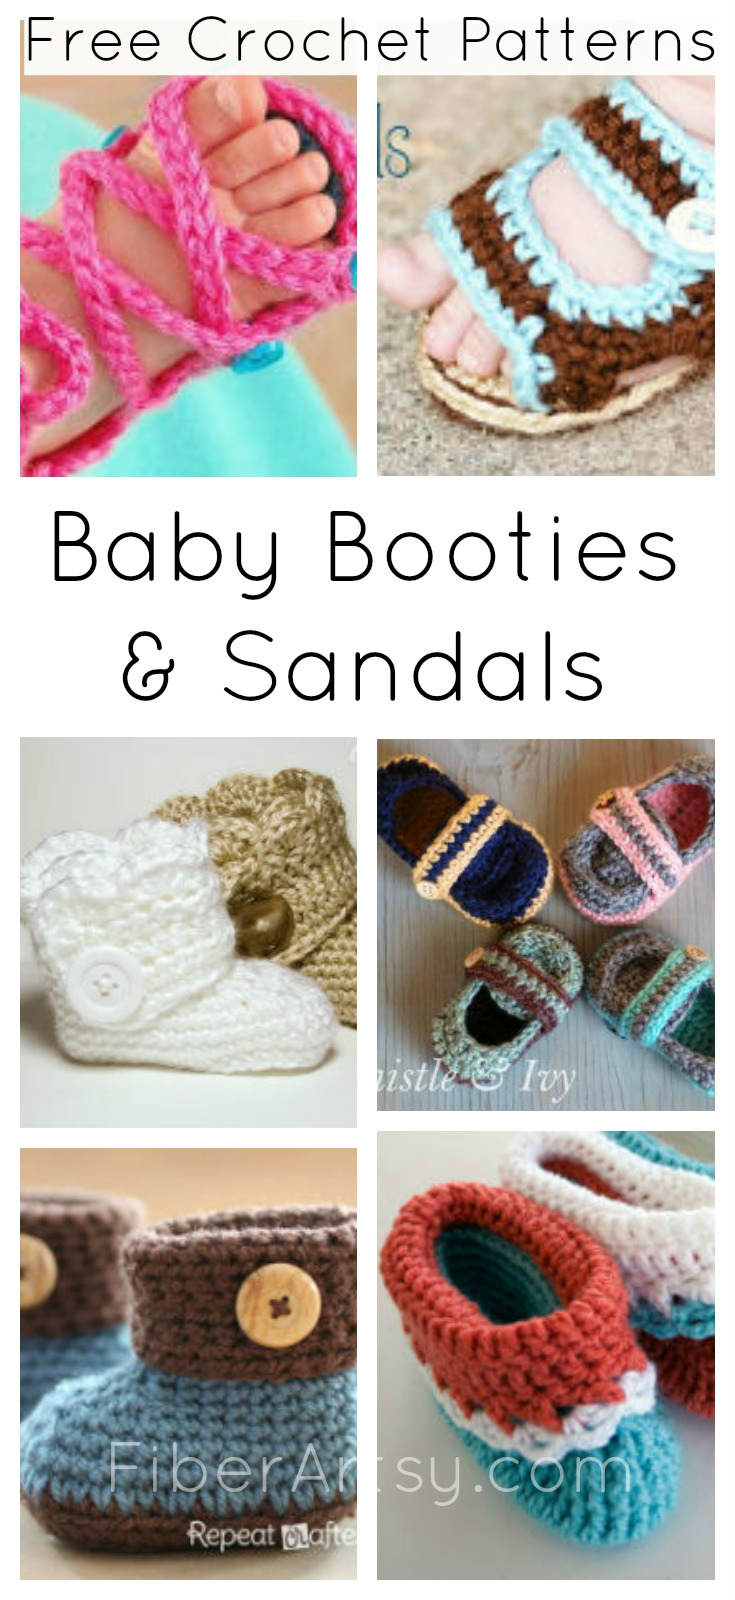 Baby Shoe Booty and Sandal Free Crochet Patterns FiberArtsy.com